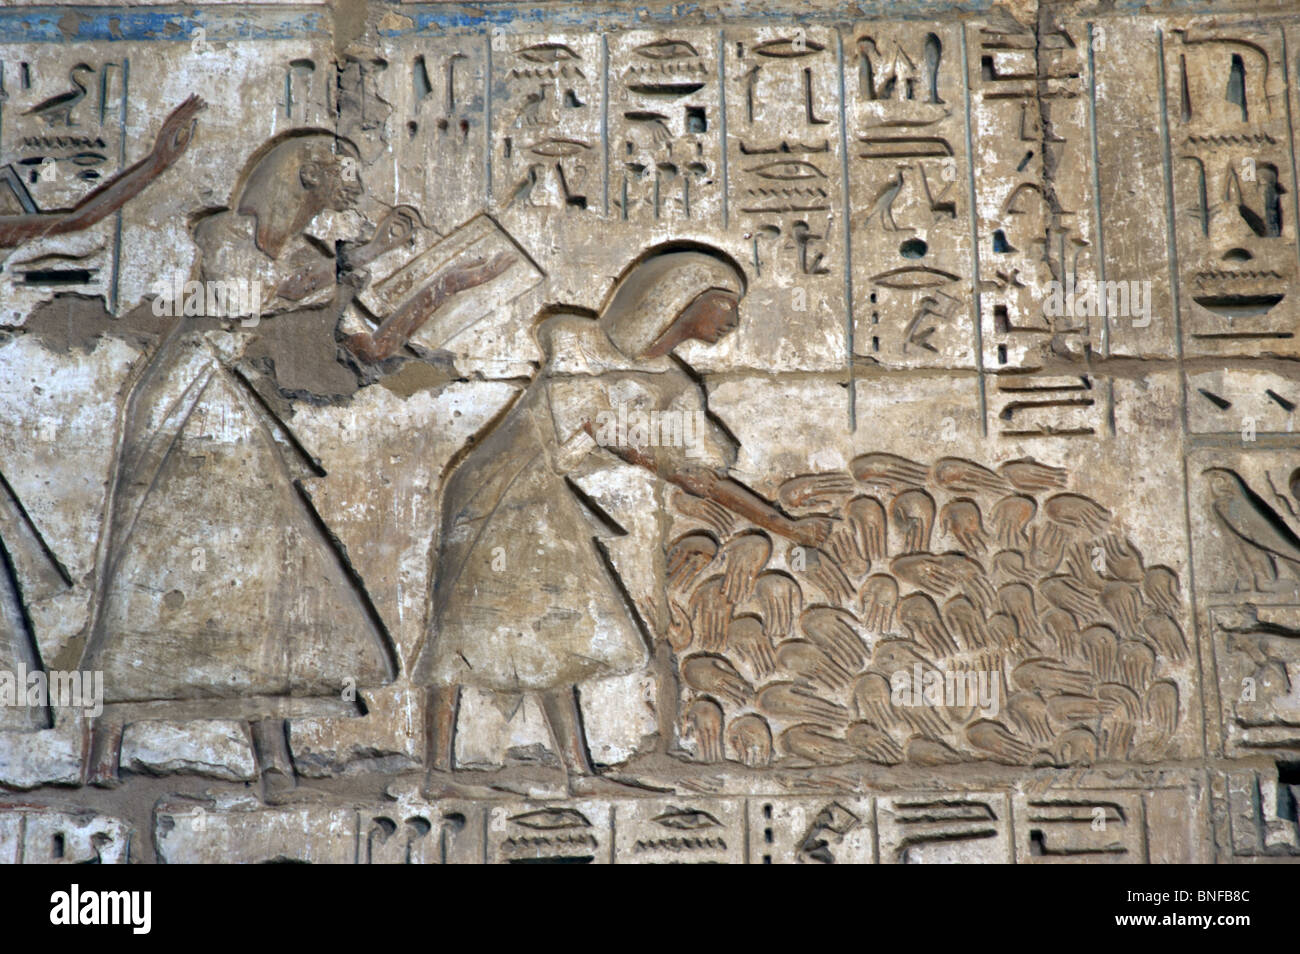 Temple of RamsesIII. Officials counting the severed hands of enemies killed in action to know the casualties in - Stock Image